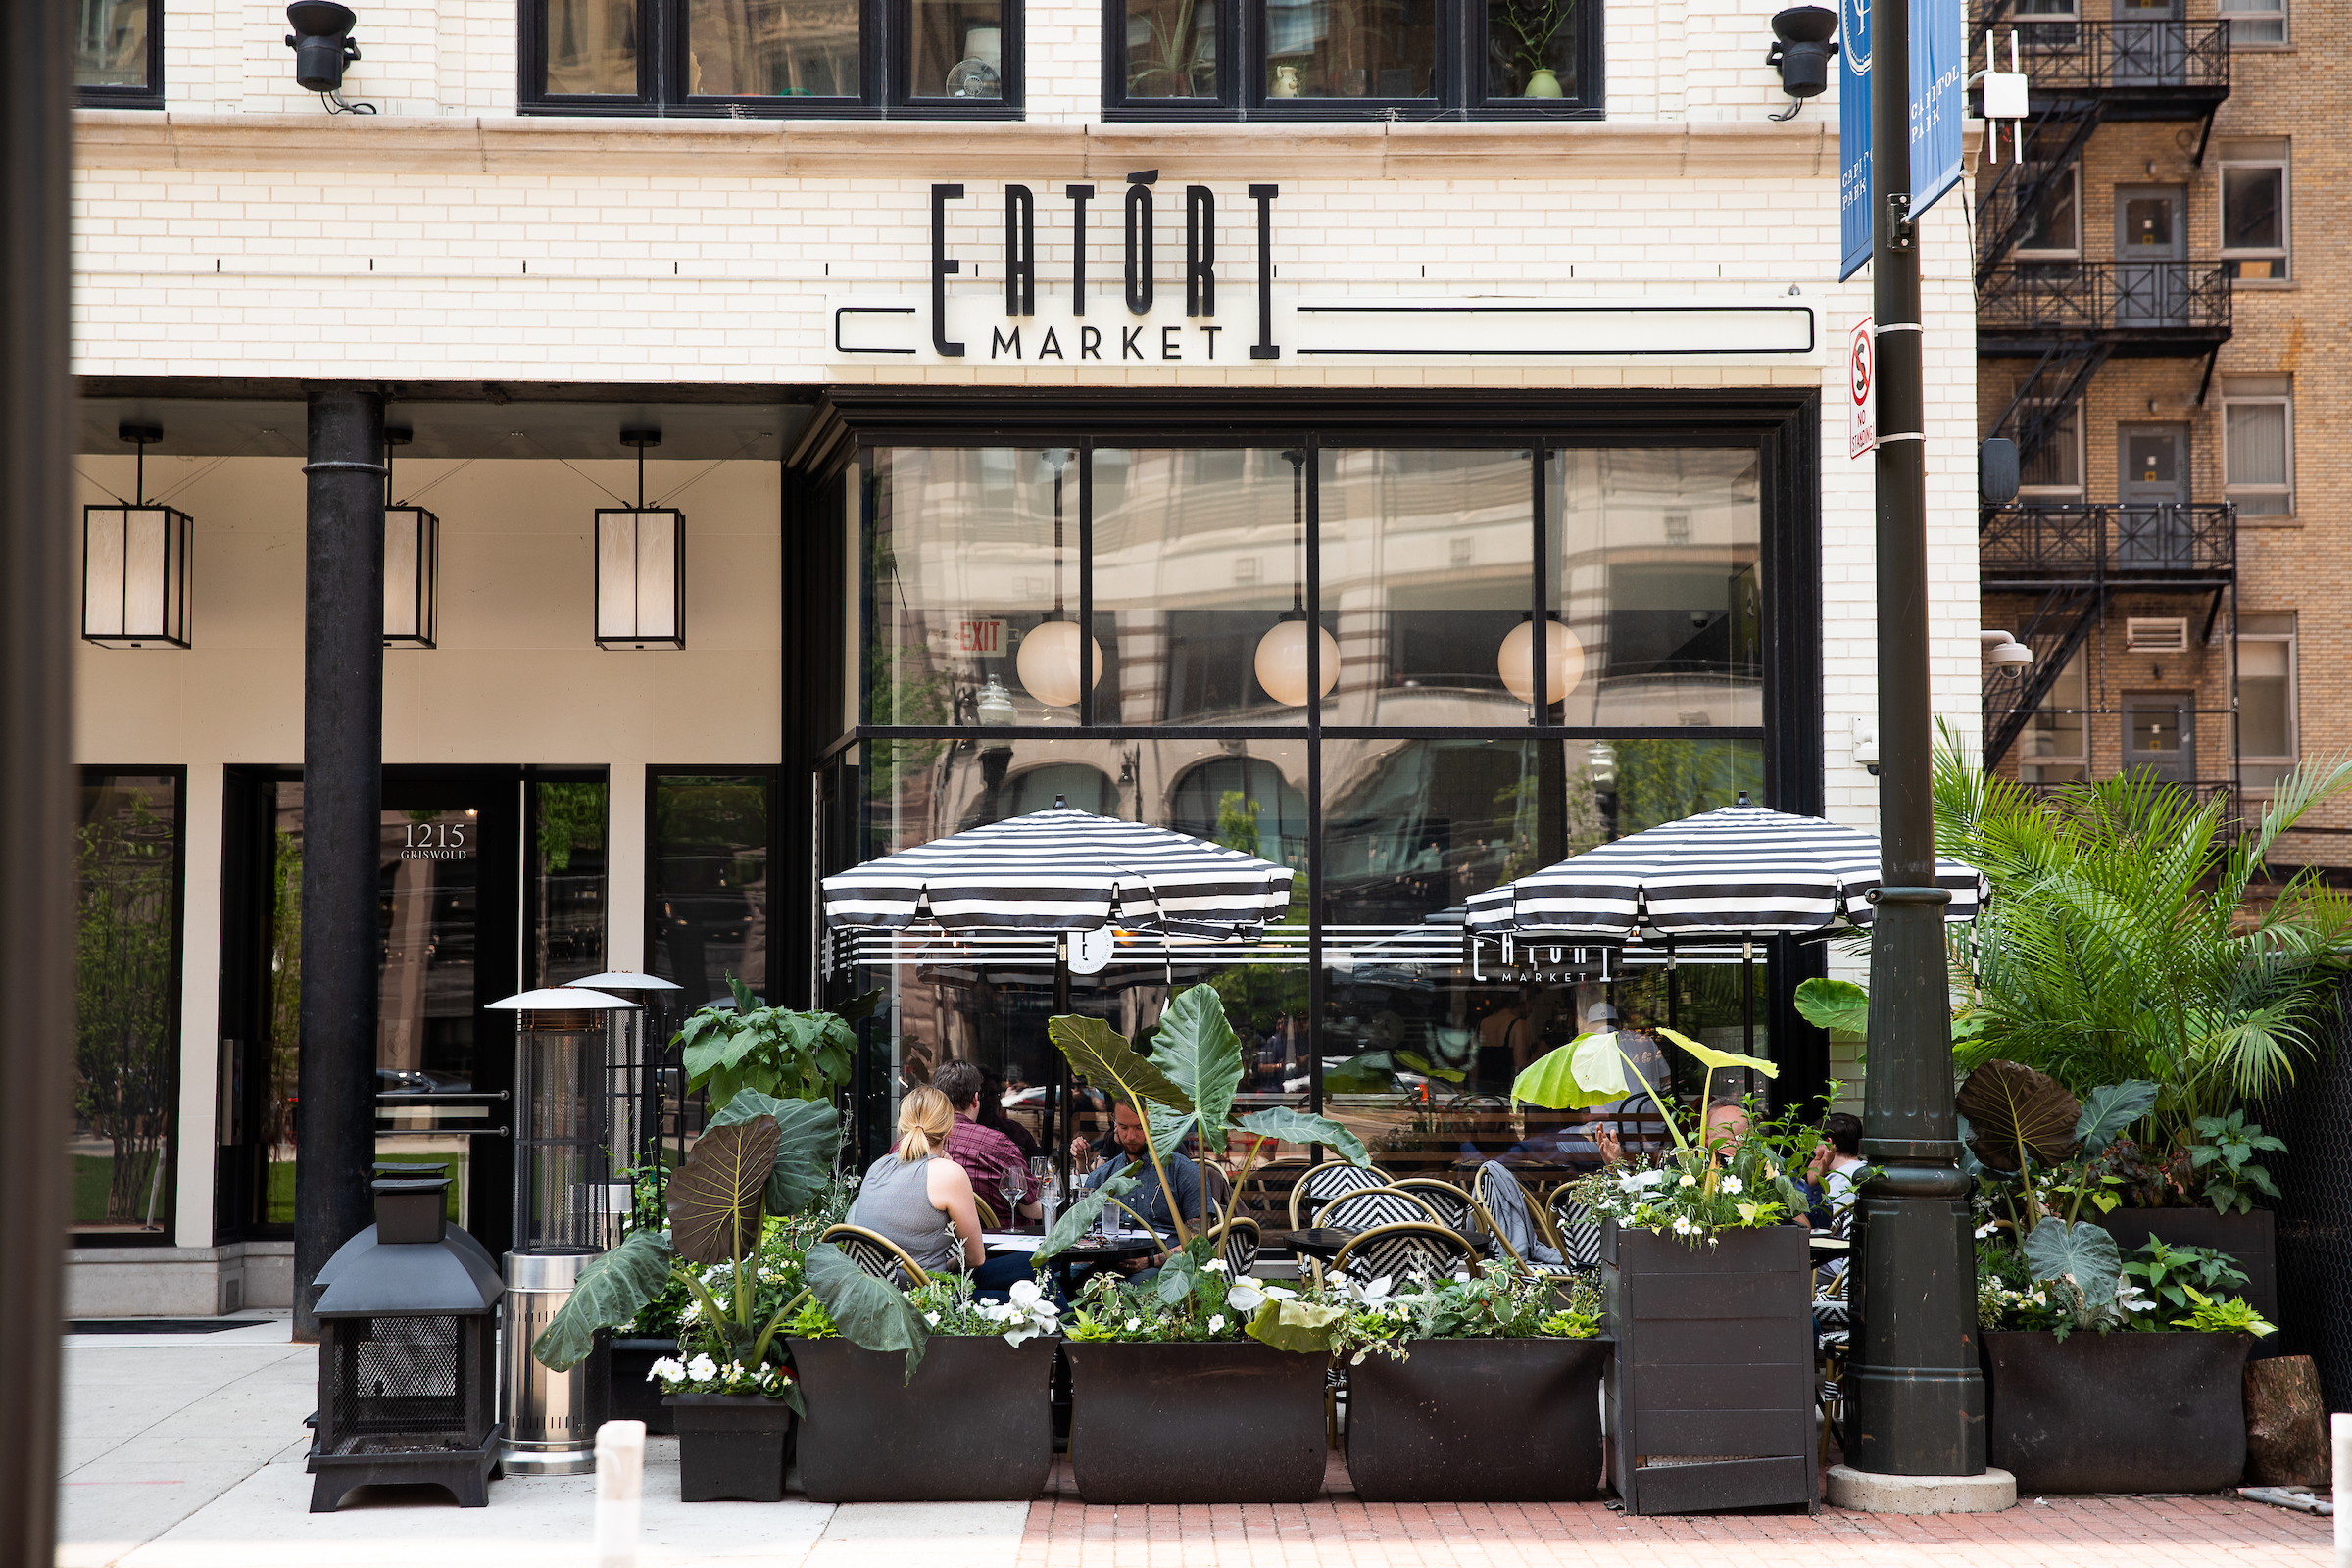 A lush patio with plants and black and white striped umbrellas outside Eatori Market in Capitol Park.